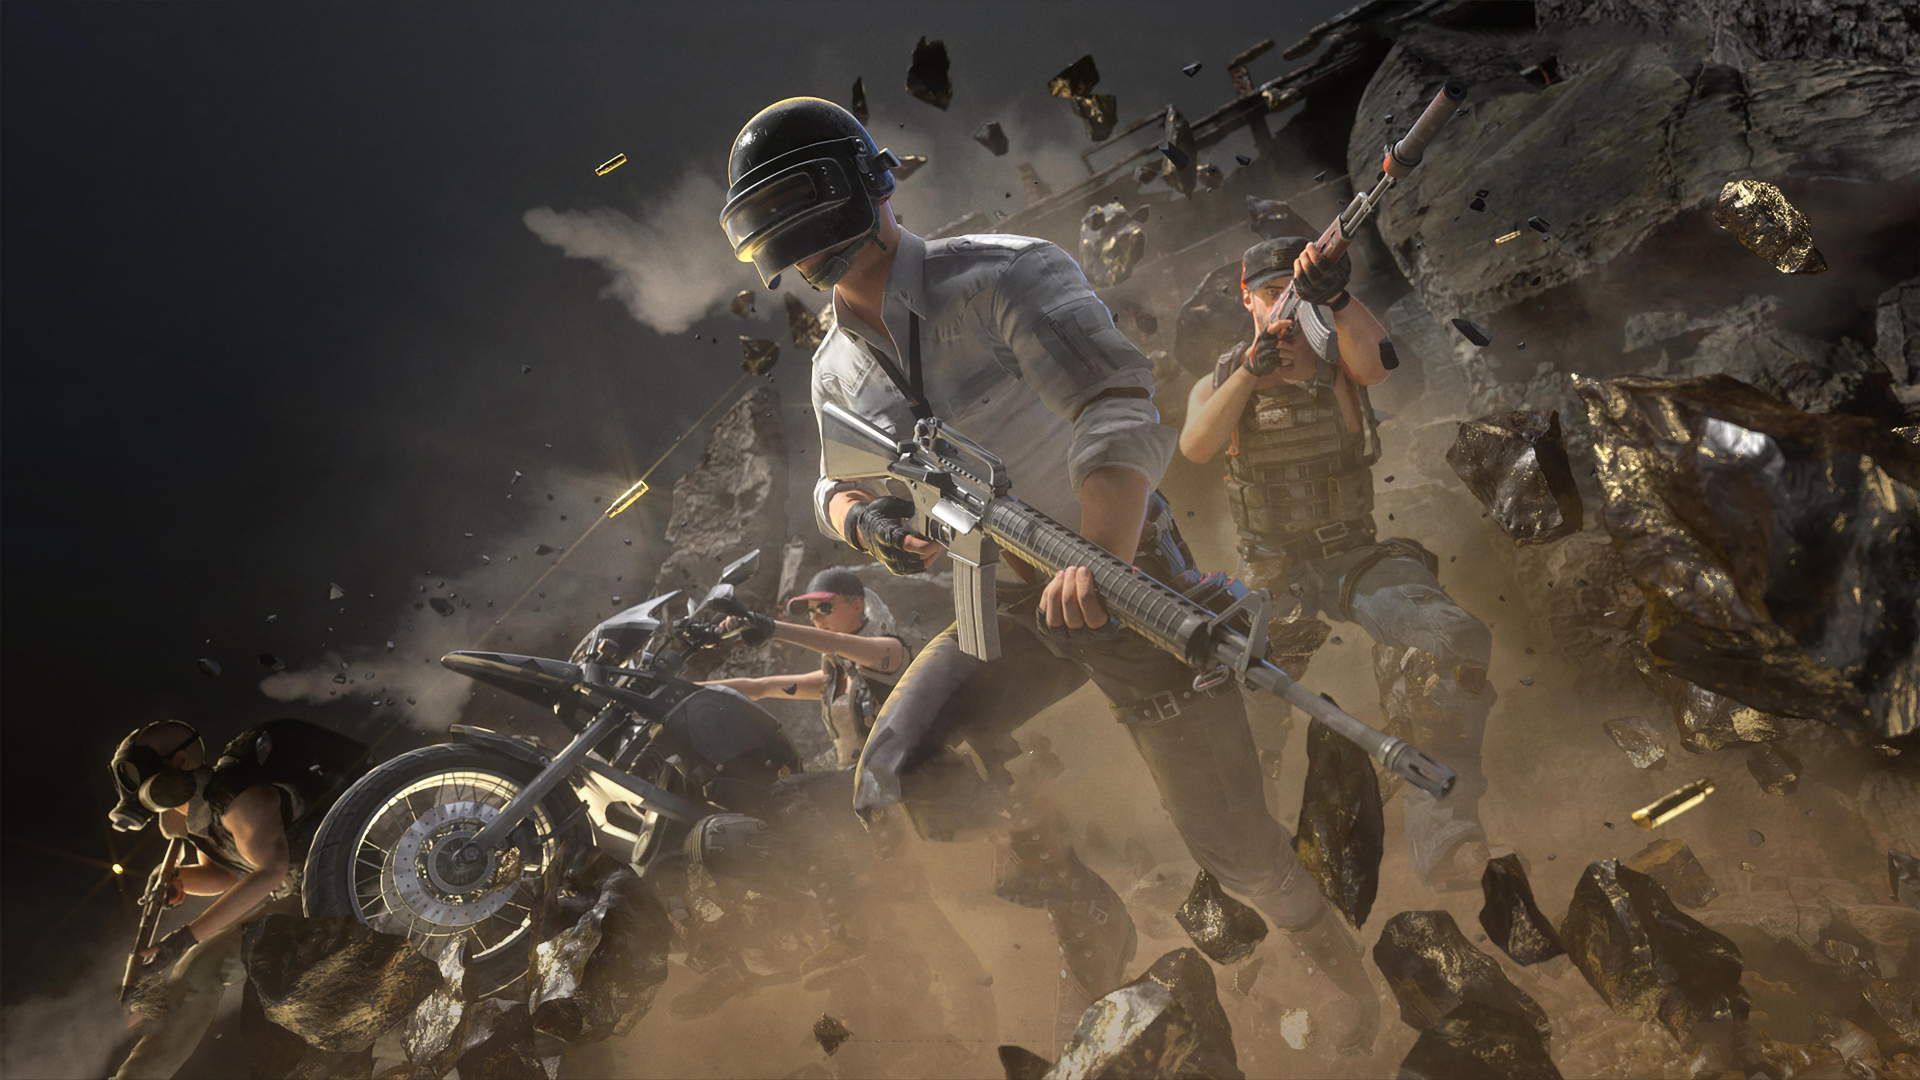 Pubg Wallpaper 1080p Posted By Sarah Anderson